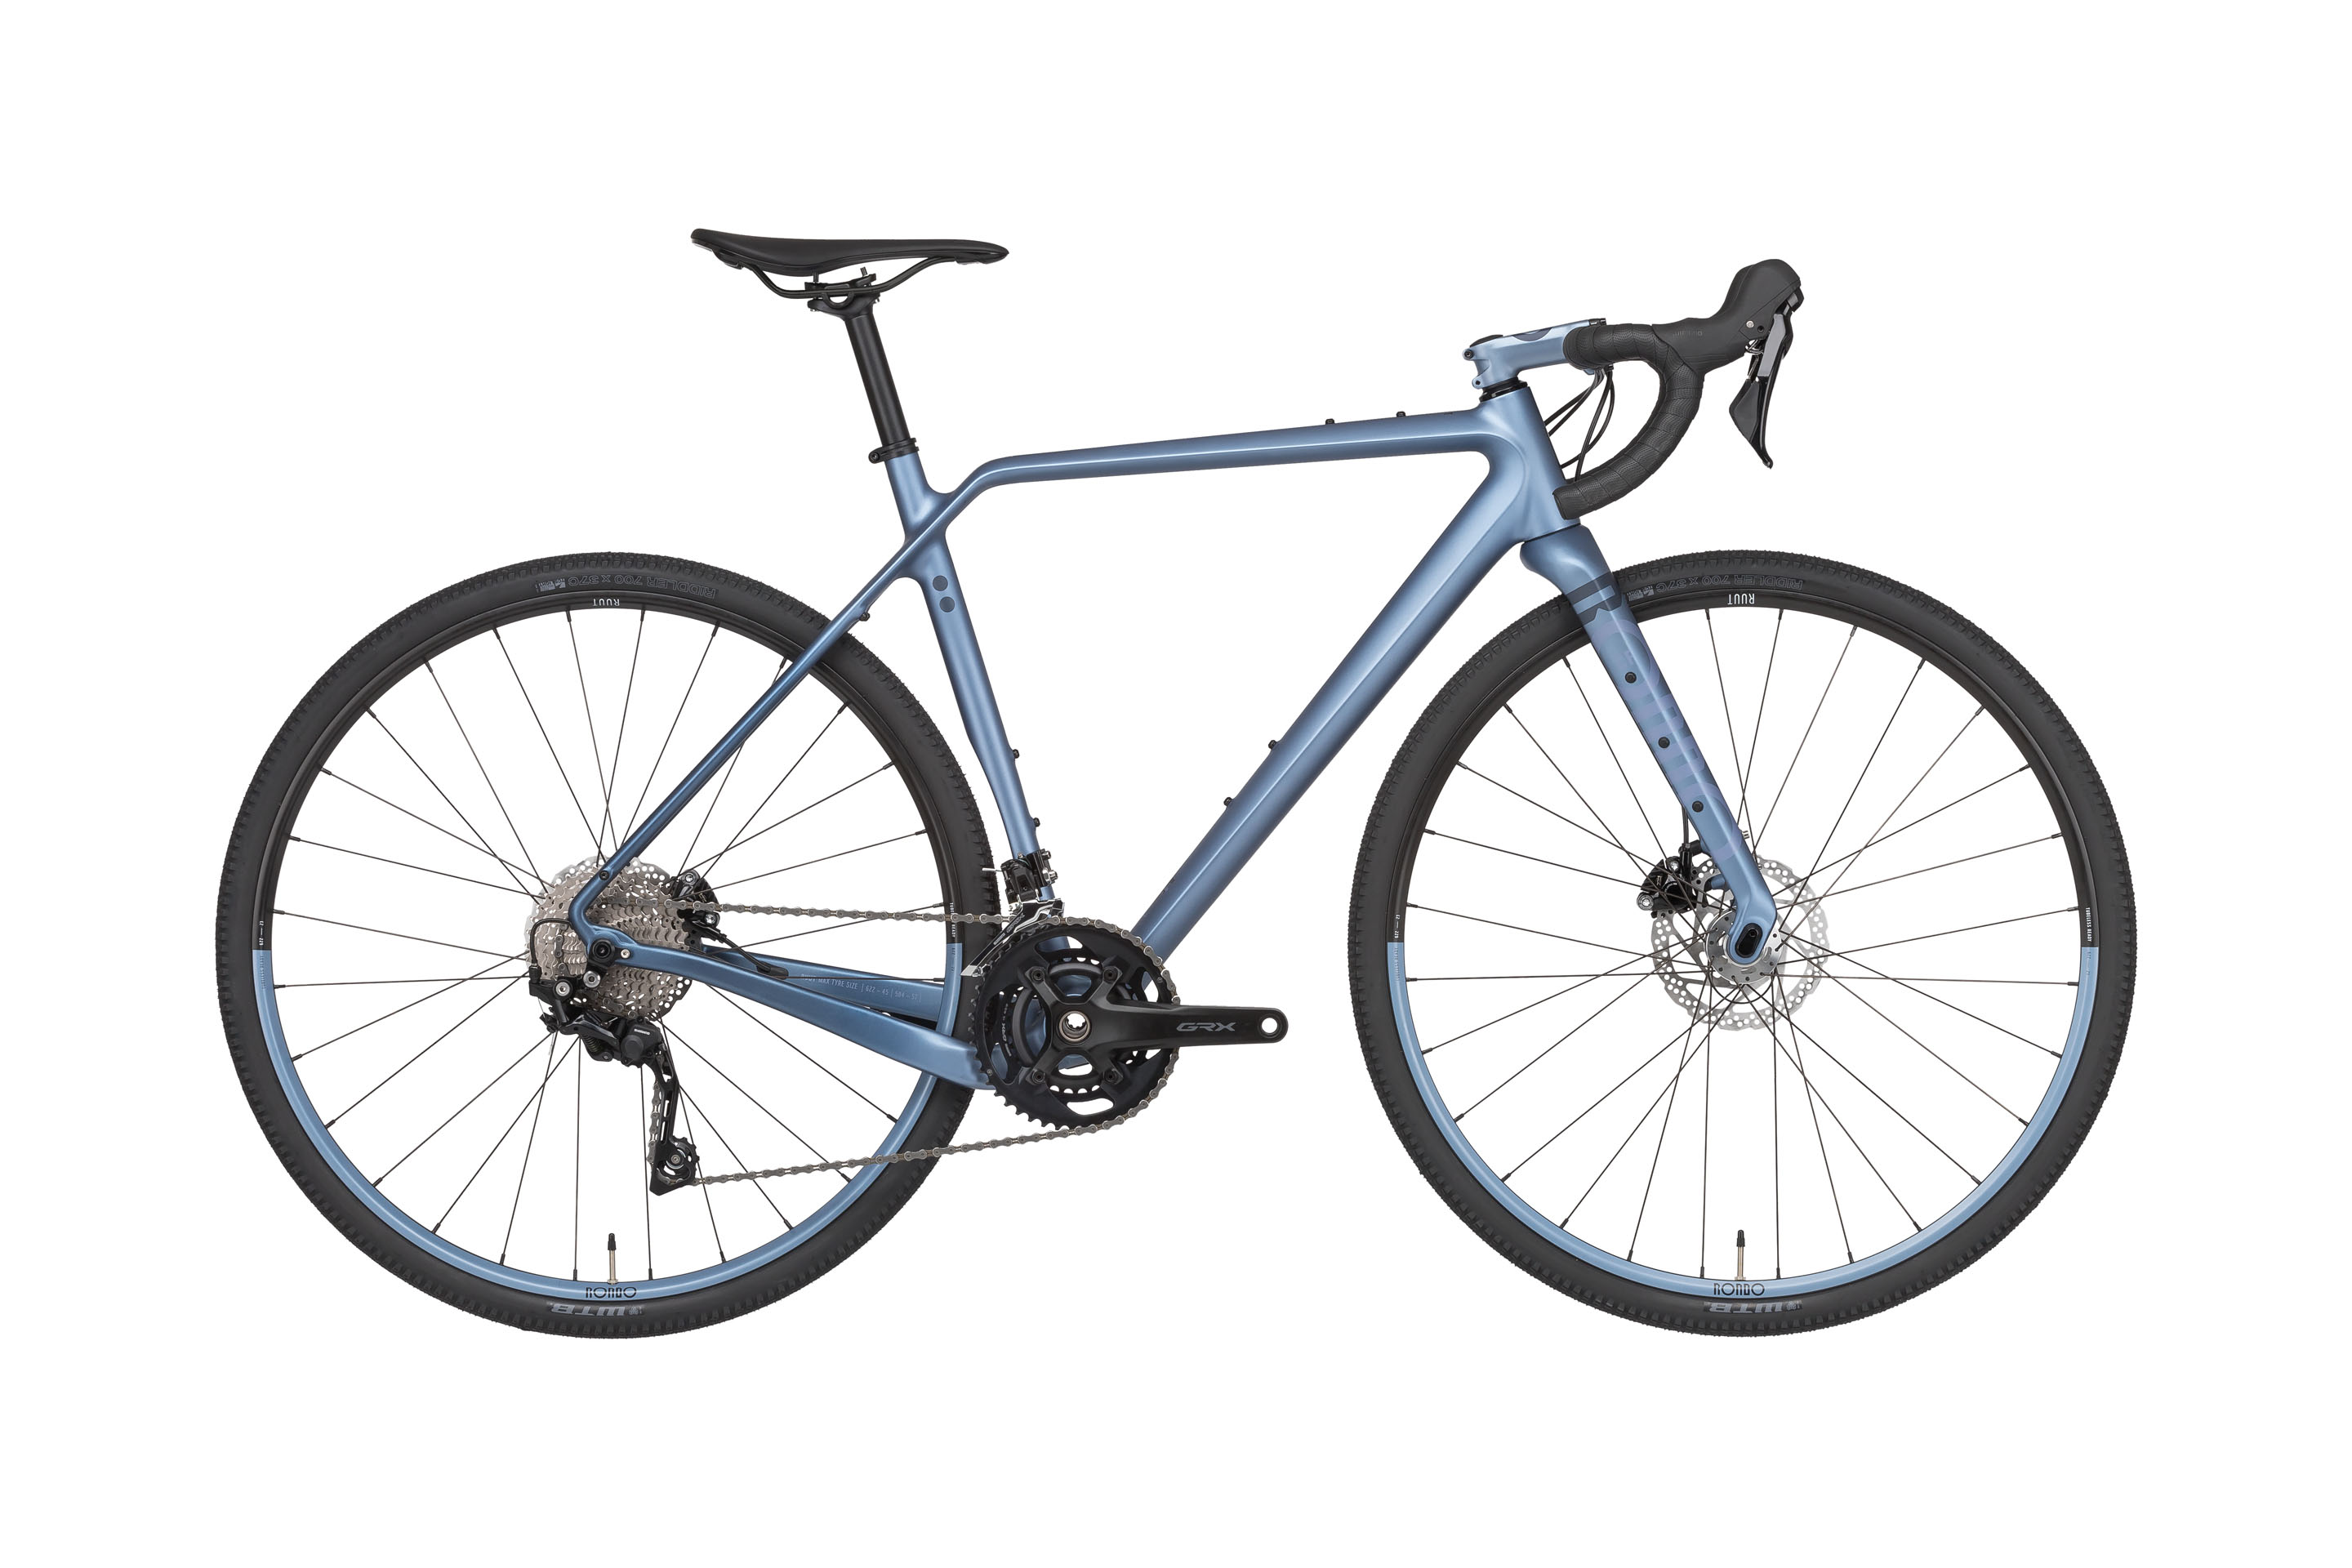 Rondo Ruut CF2 - 2X Gravel Plus Bike